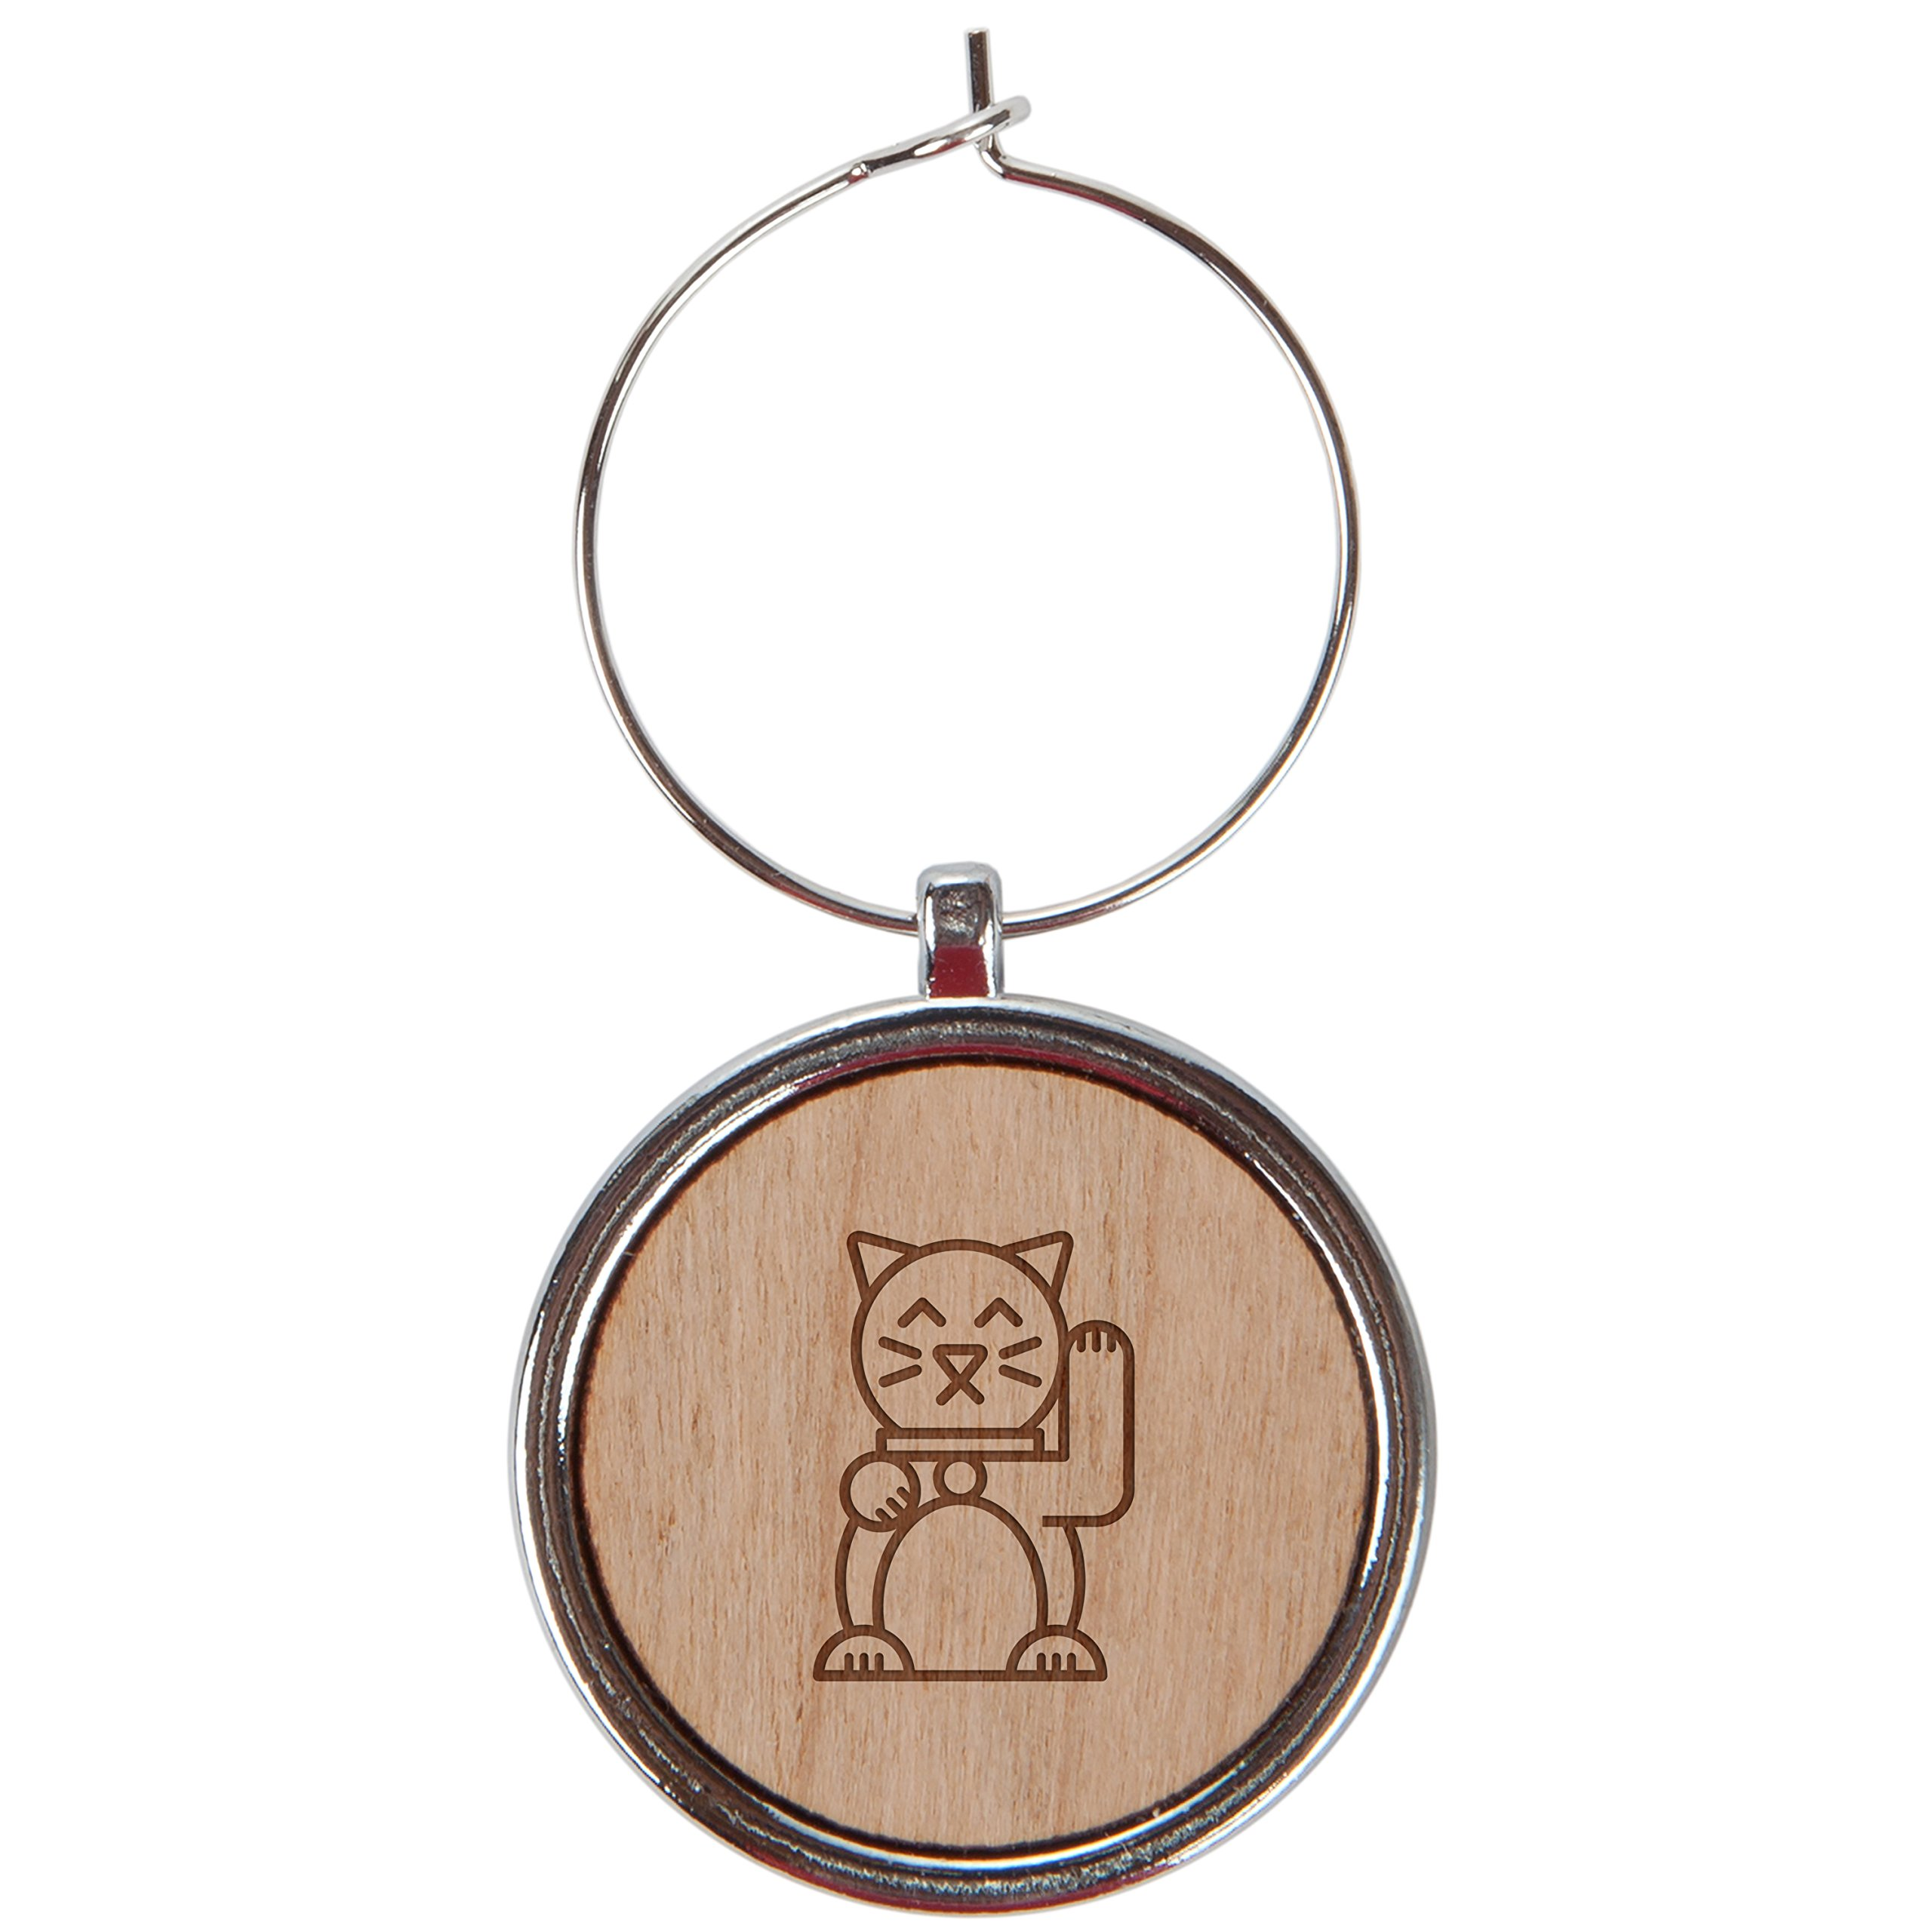 Chinese Cat Wood Wine Glass Charms Set Of 6-1 Inch Laser Engraved Wine Glass Charms For Stemmed Wine Glasses - Wine Glass Charm Gift